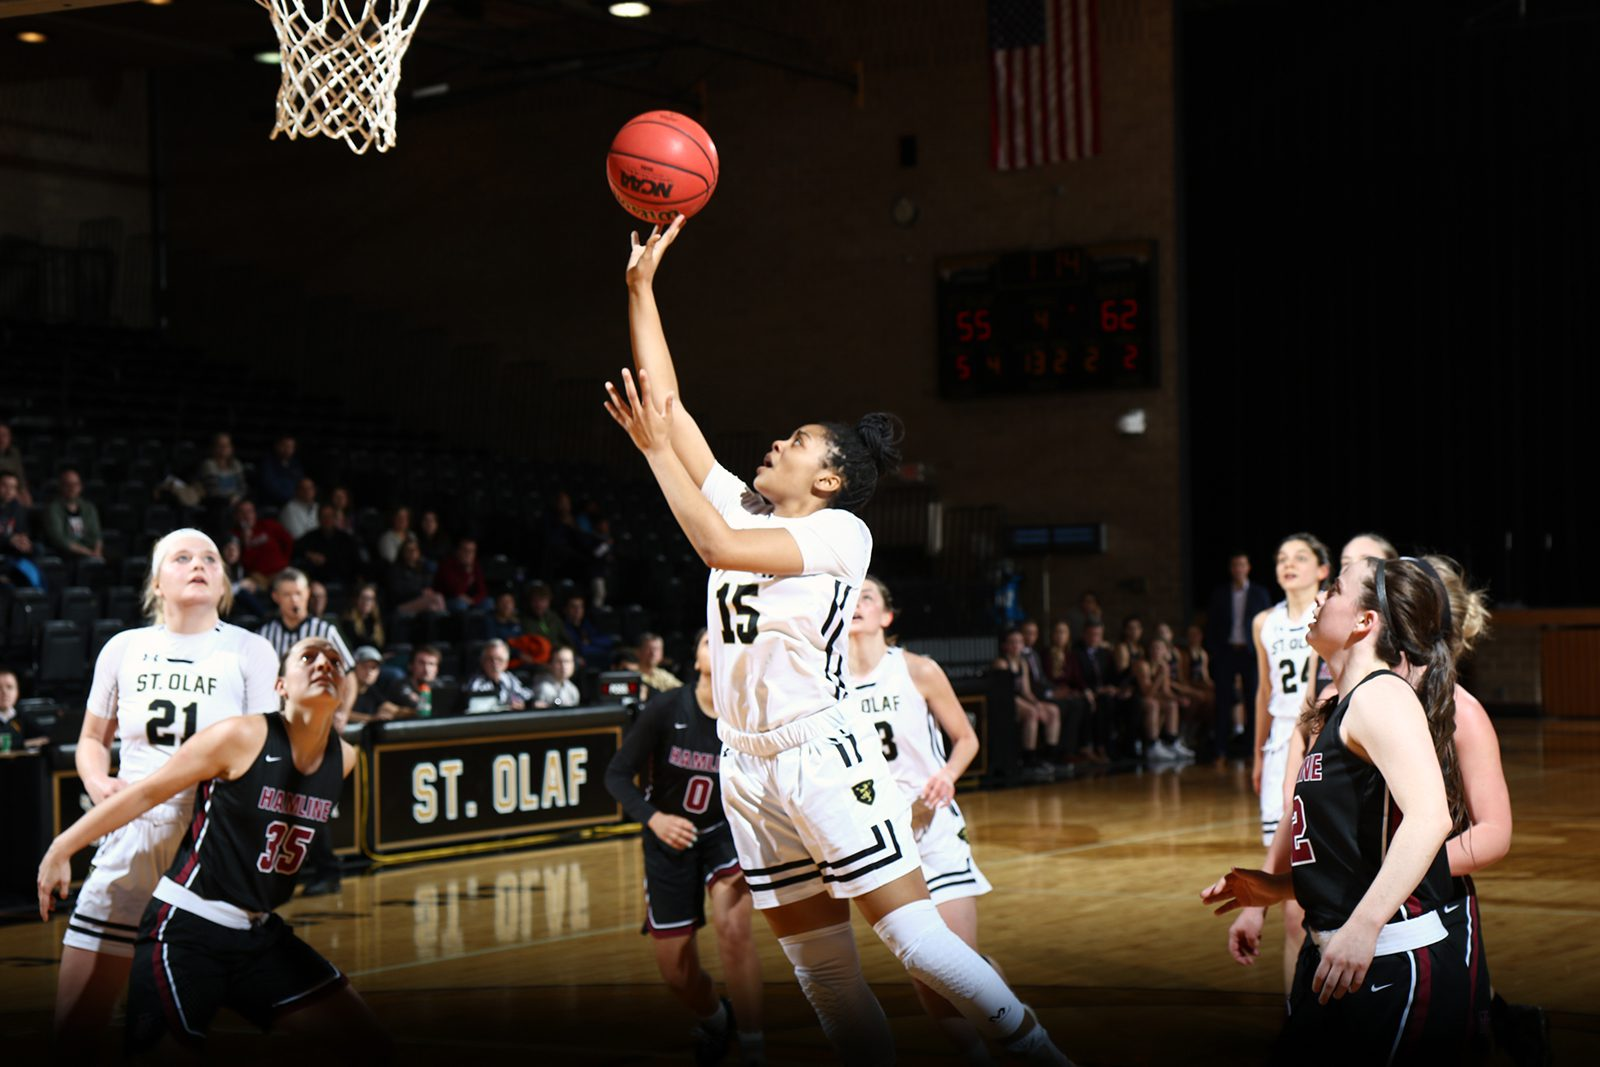 K'Lynn Lewis lifts a basketball up to the net while other players stand near her on the court.